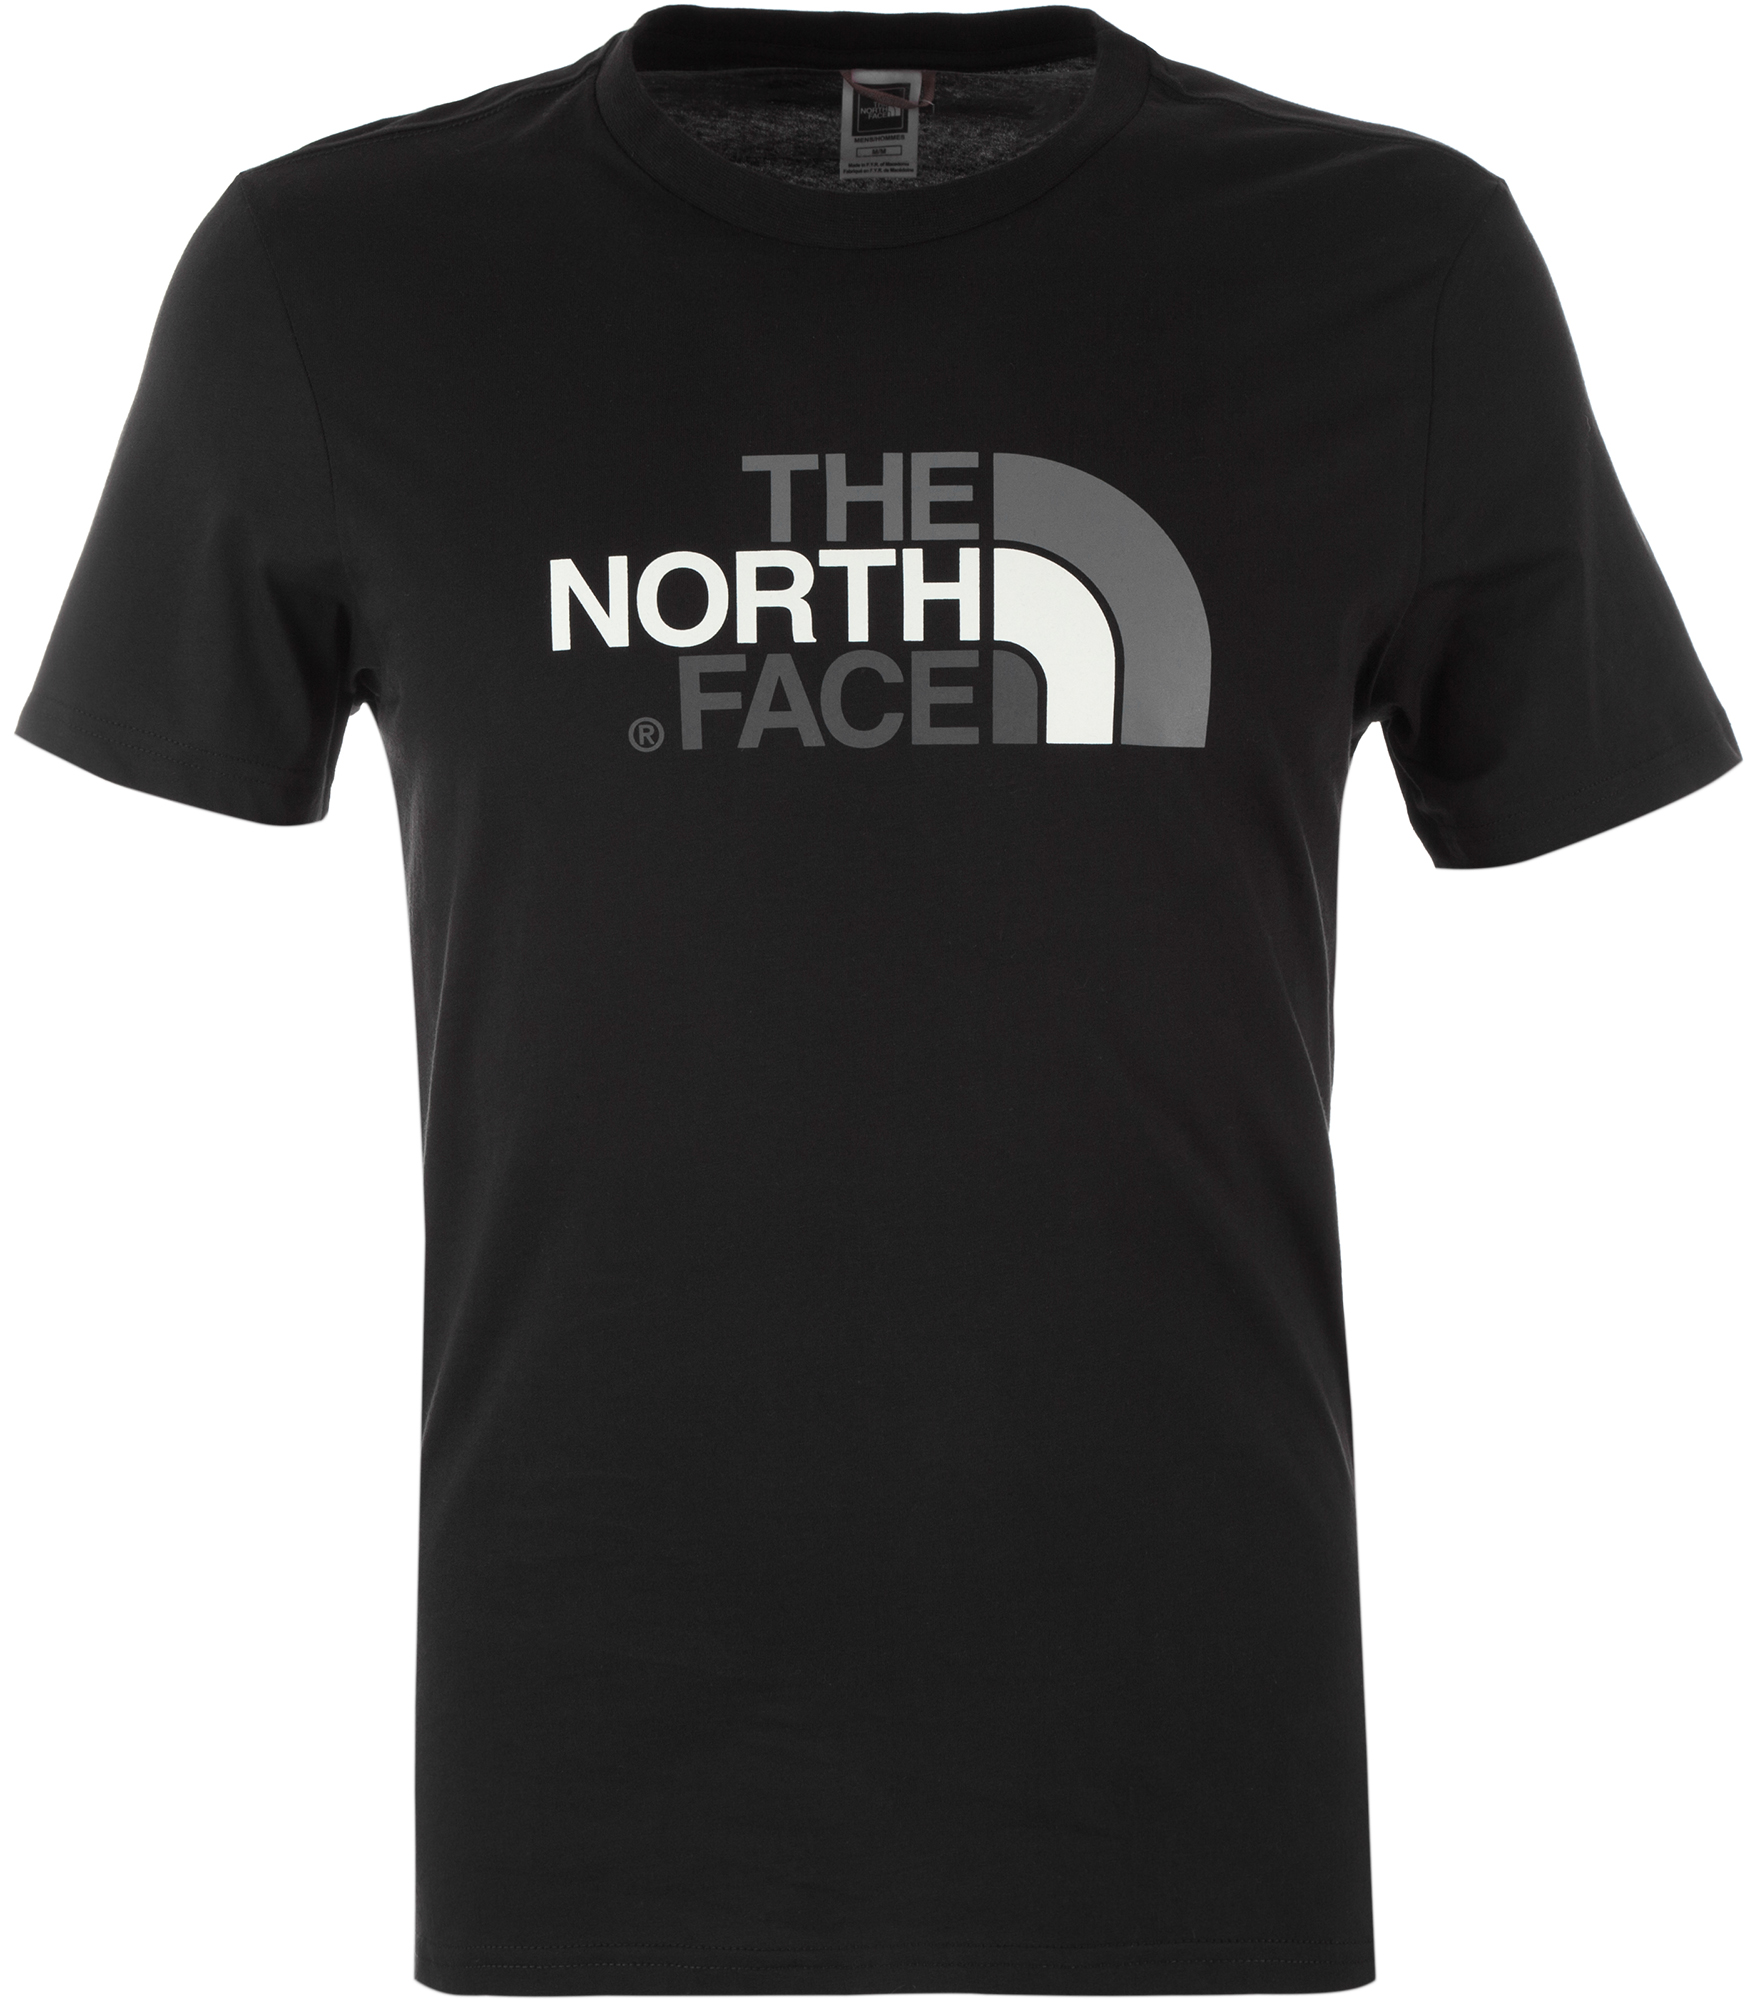 The North Face Футболка мужская The North Face Easy футболка quelle john devin 288247